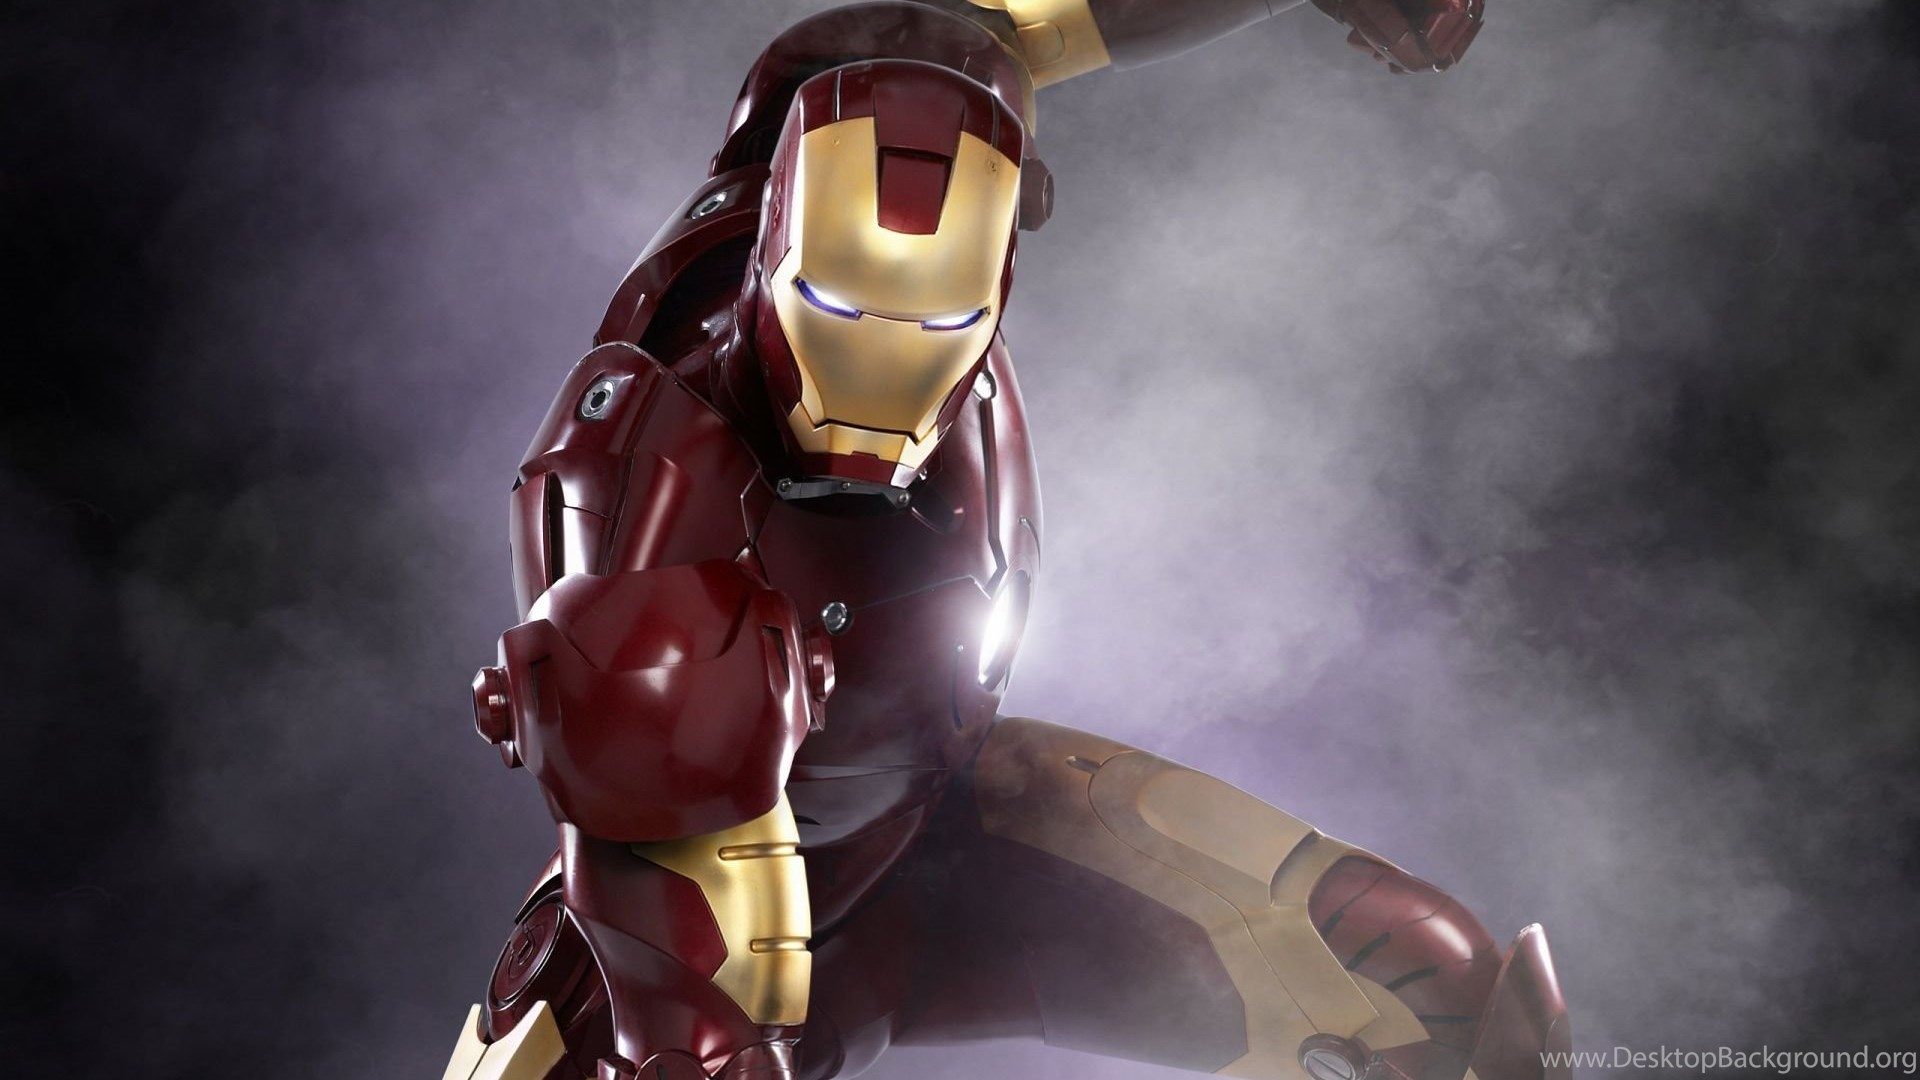 Iron Man 3 Hd 4k Or Hd Wallpapers For Your Pc Mac Or Mobile